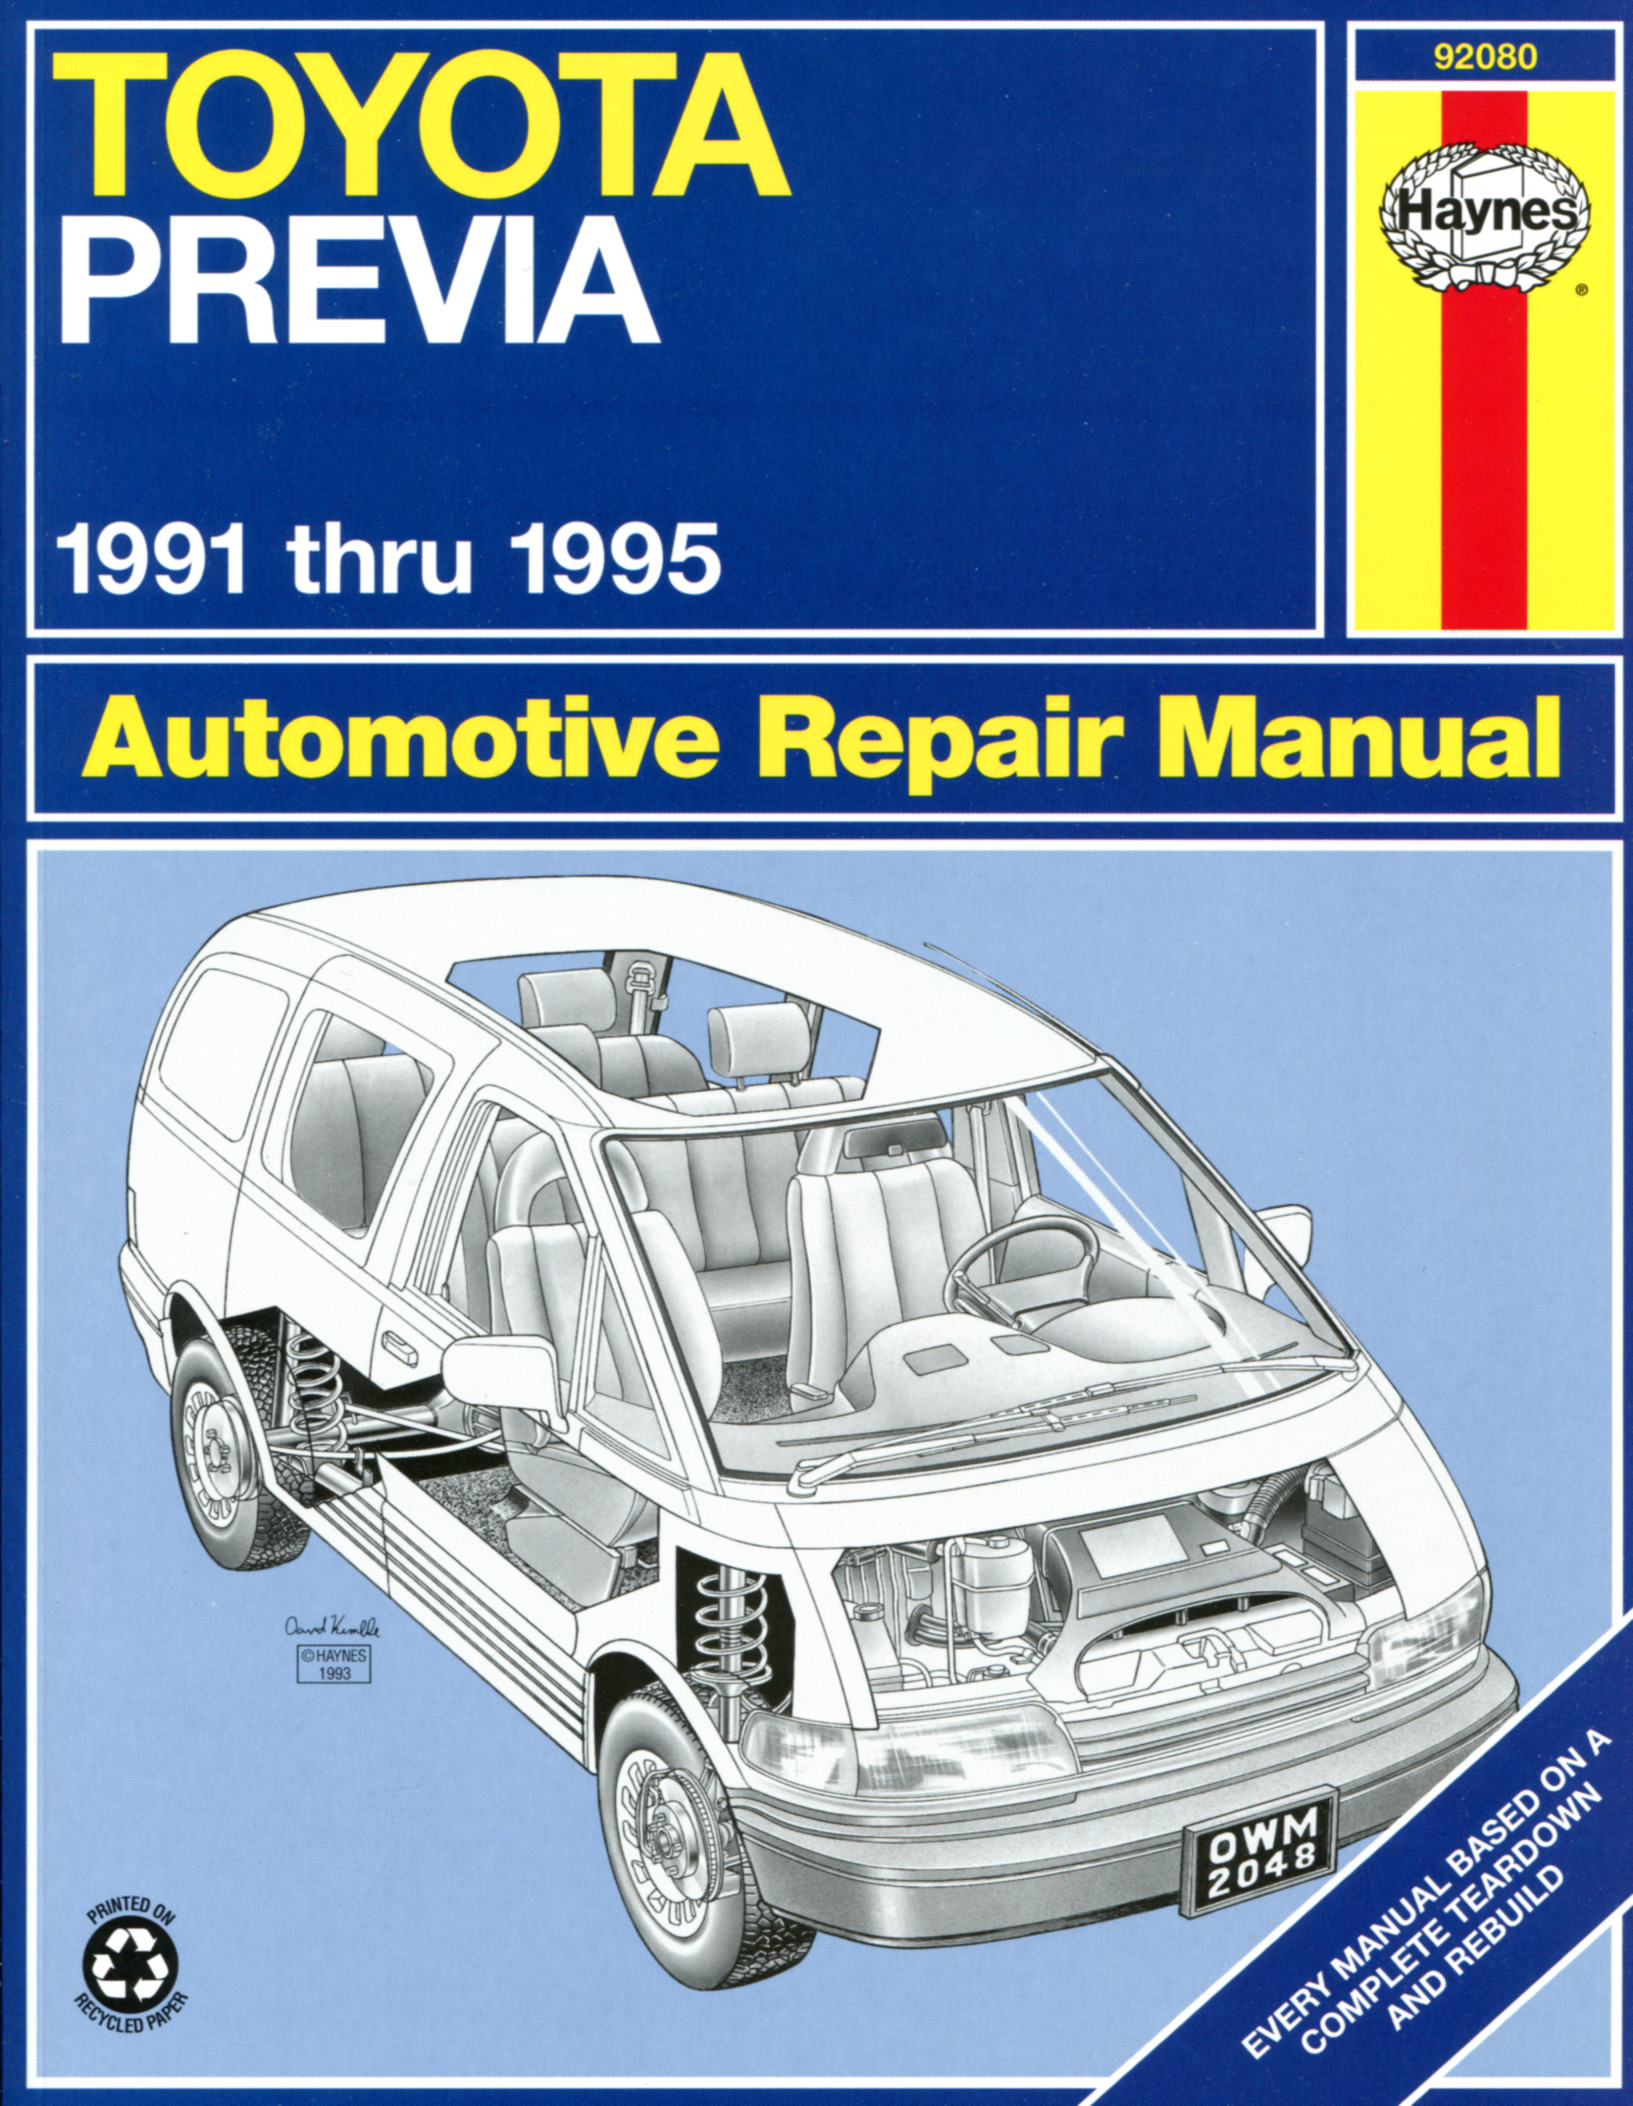 Haynes 92080 cover toyota previa (1991 1995) haynes repair manual (usa) haynes manuals 1995 toyota previa wiring diagram at panicattacktreatment.co